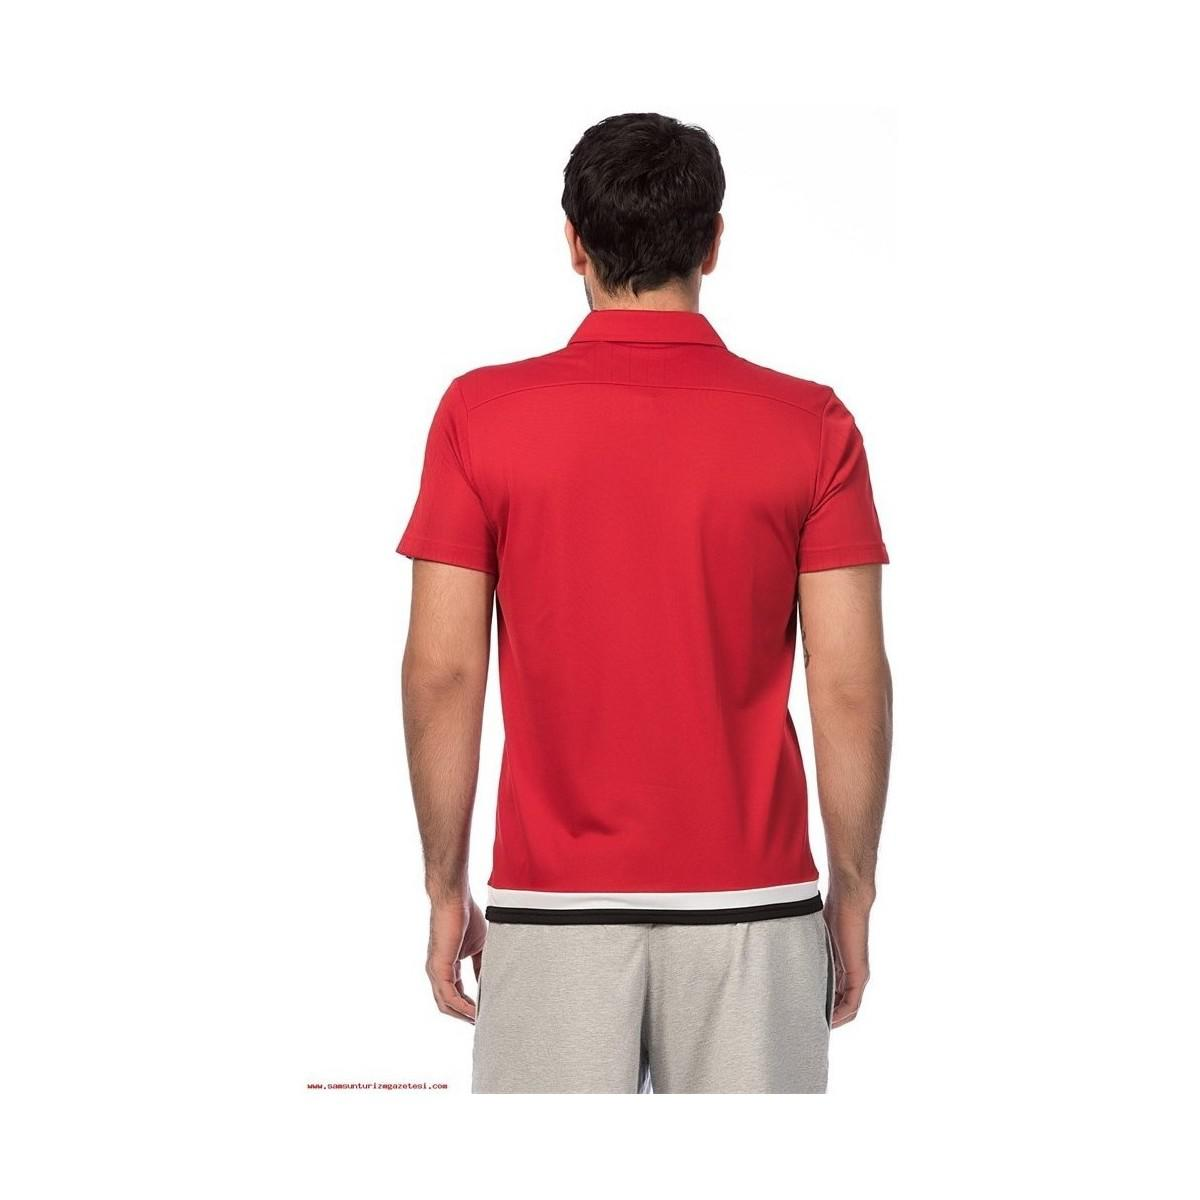 73dcece04 Adidas Polo Tiro 15 Cl Men s T Shirt In Red in Red for Men - Lyst